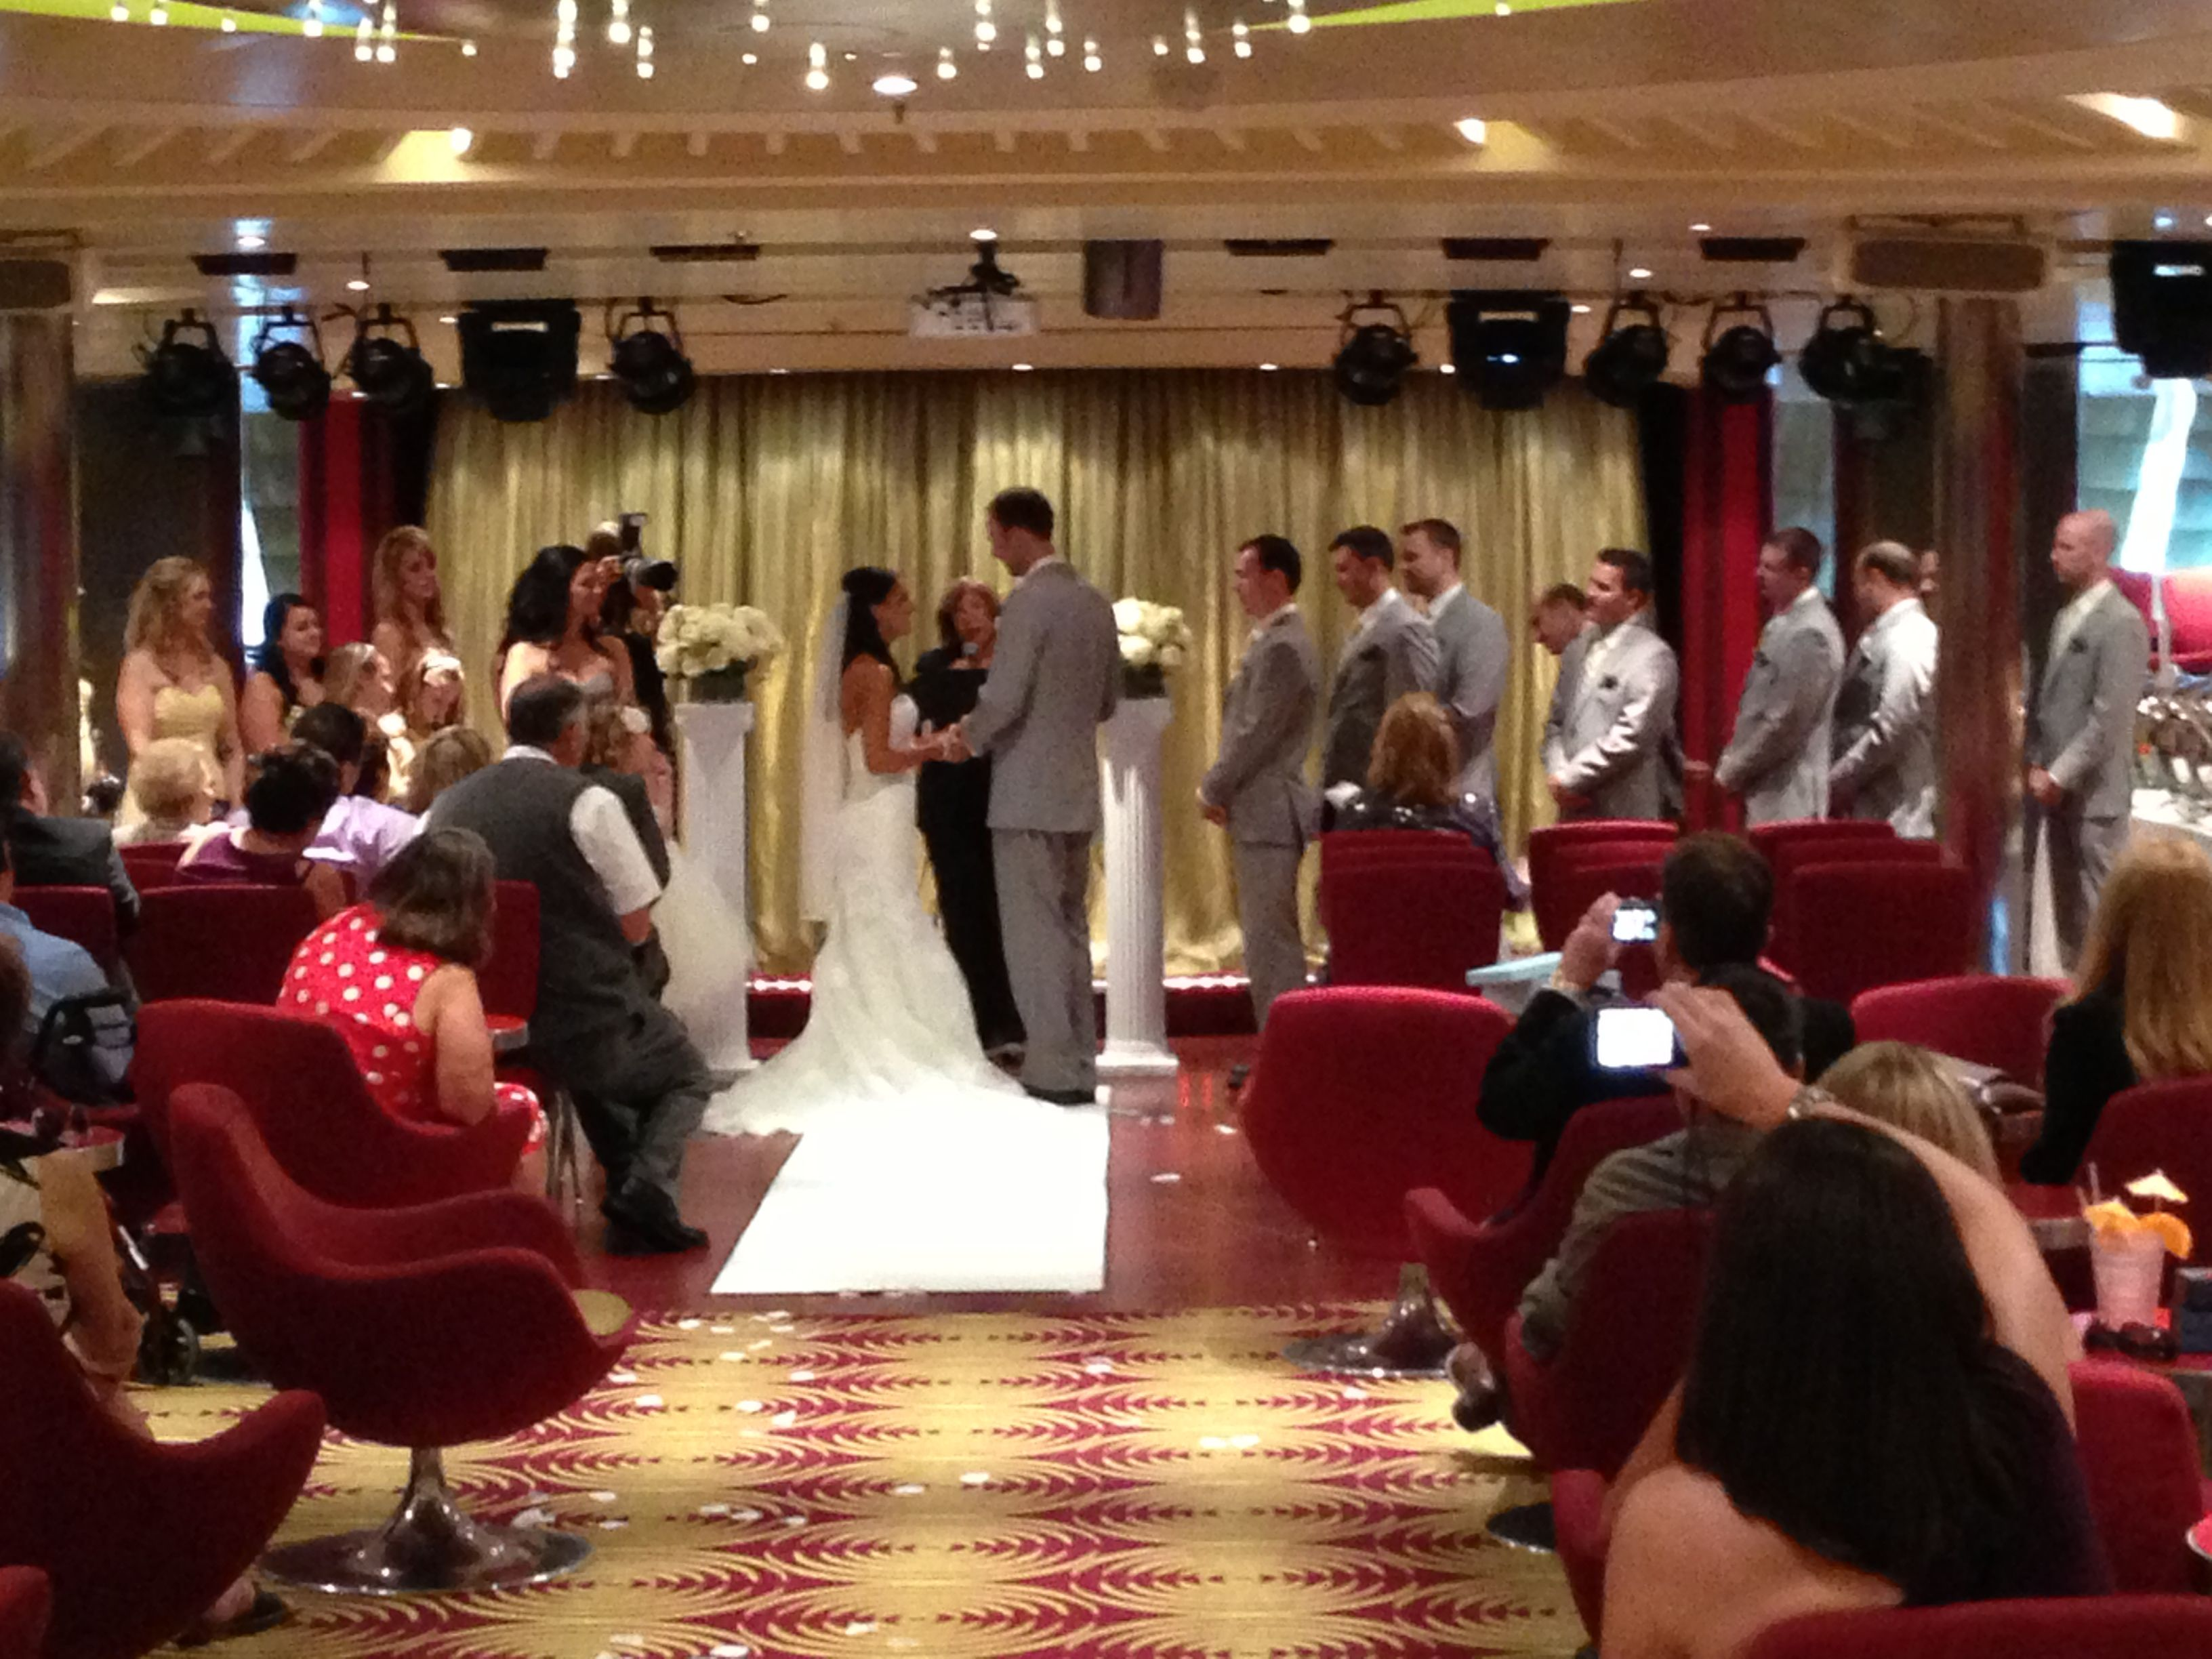 Onboard Carnival Breeze Cruise Ship Wedding Carnival Breeze Carnival Cruise Line